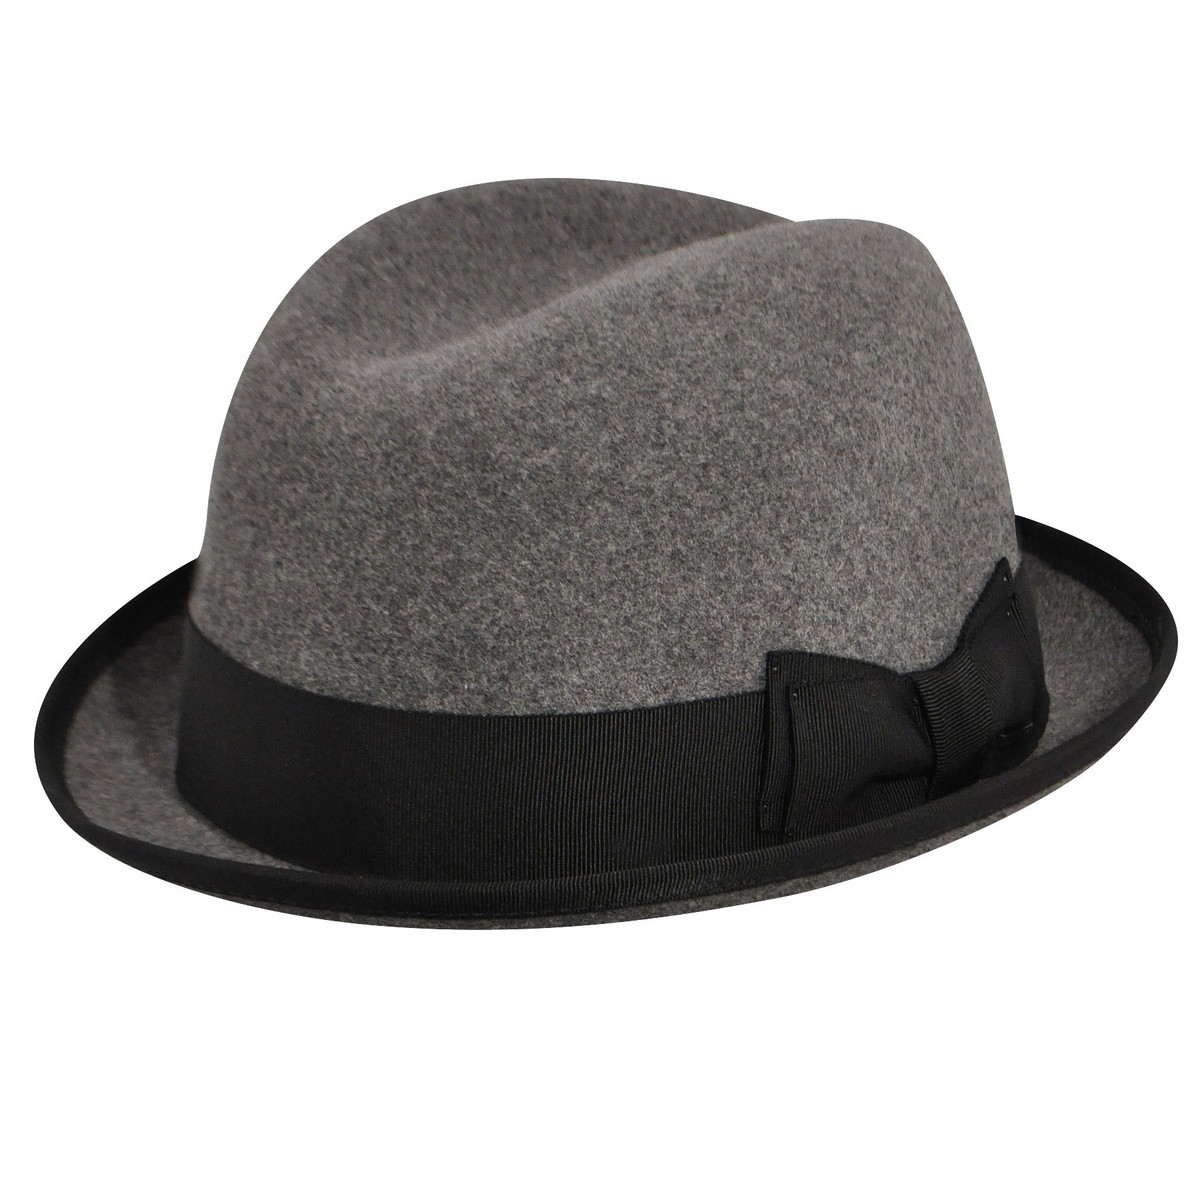 Bailey of Hollywood Basil LiteFeltR Fedora PEWTER フェドラハット 帽子 PEWTER